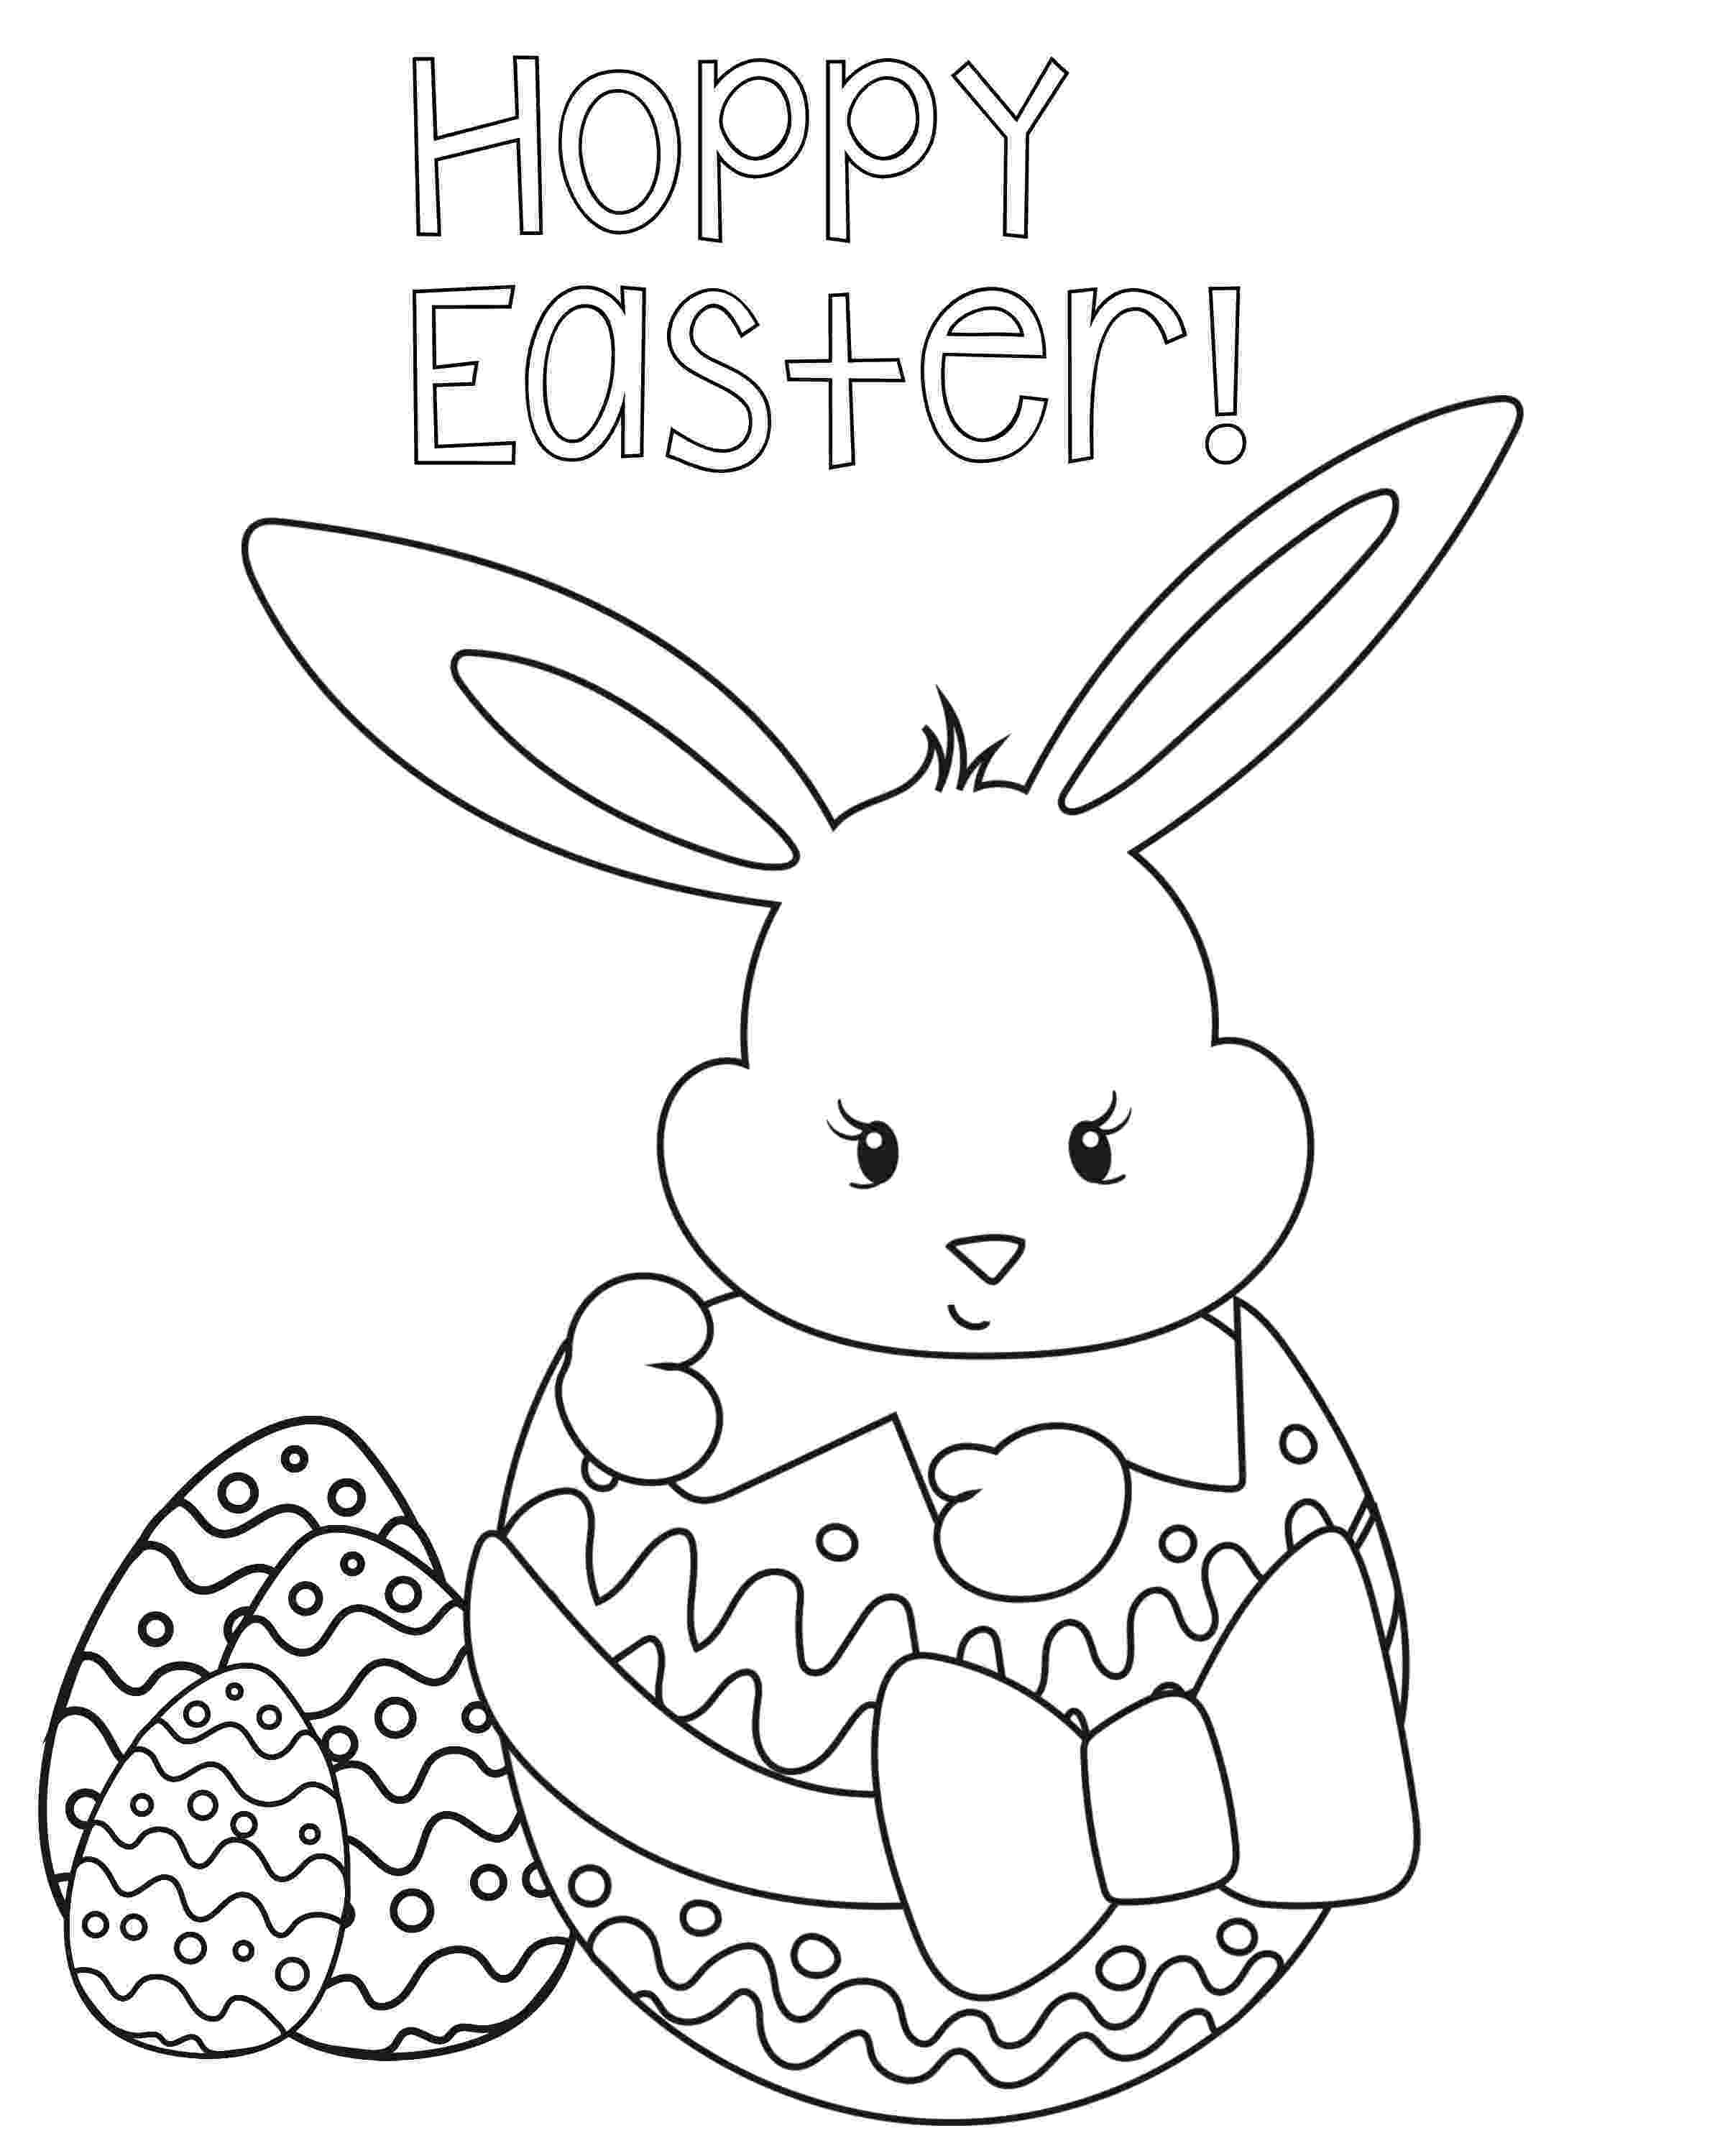 easter coloring sheets free printable christian 15 easter coloring pages religious free printables for kids sheets free easter printable coloring christian